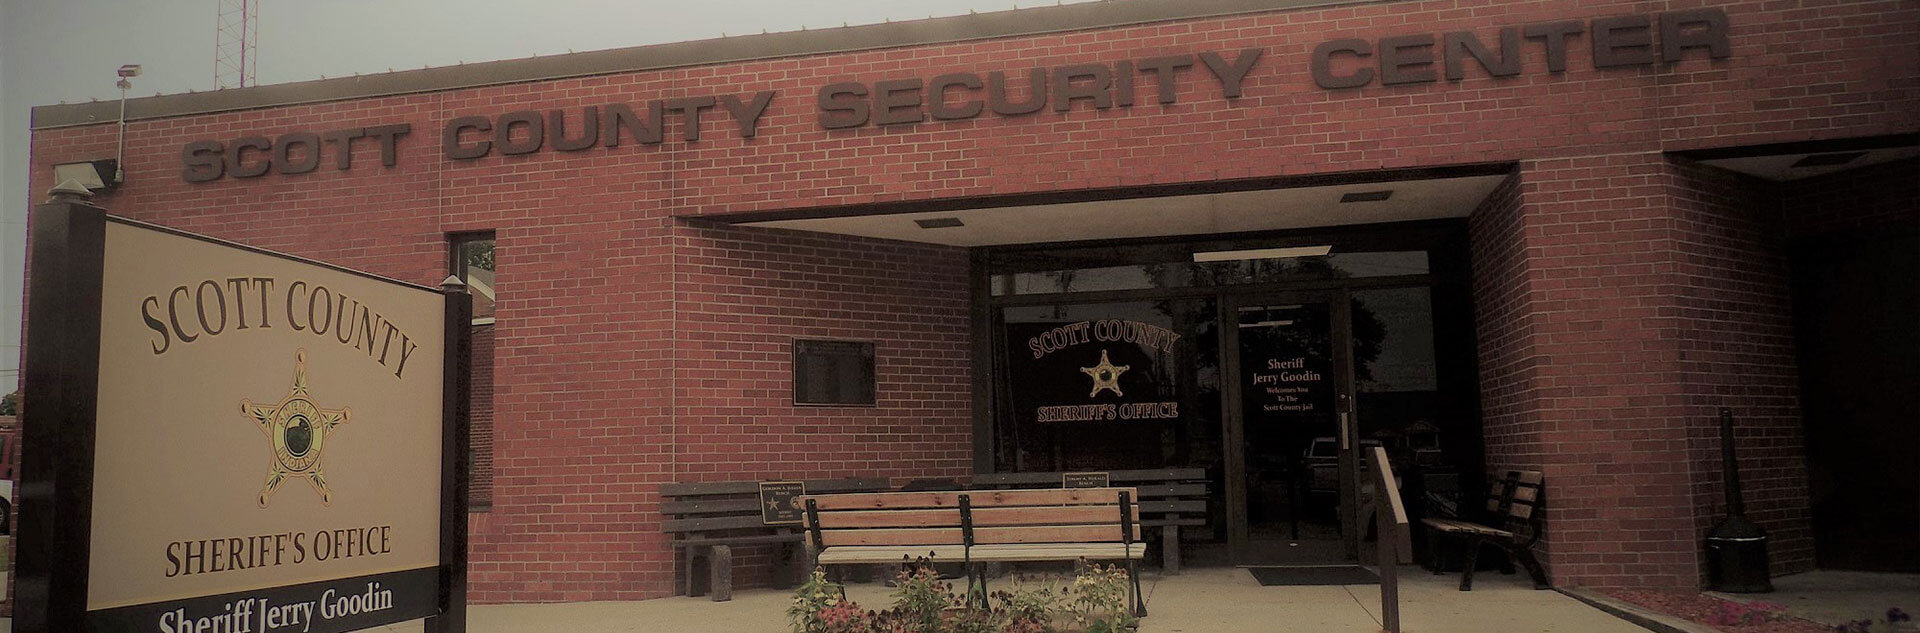 Front entrance to the Scott County Sheriff's Office.